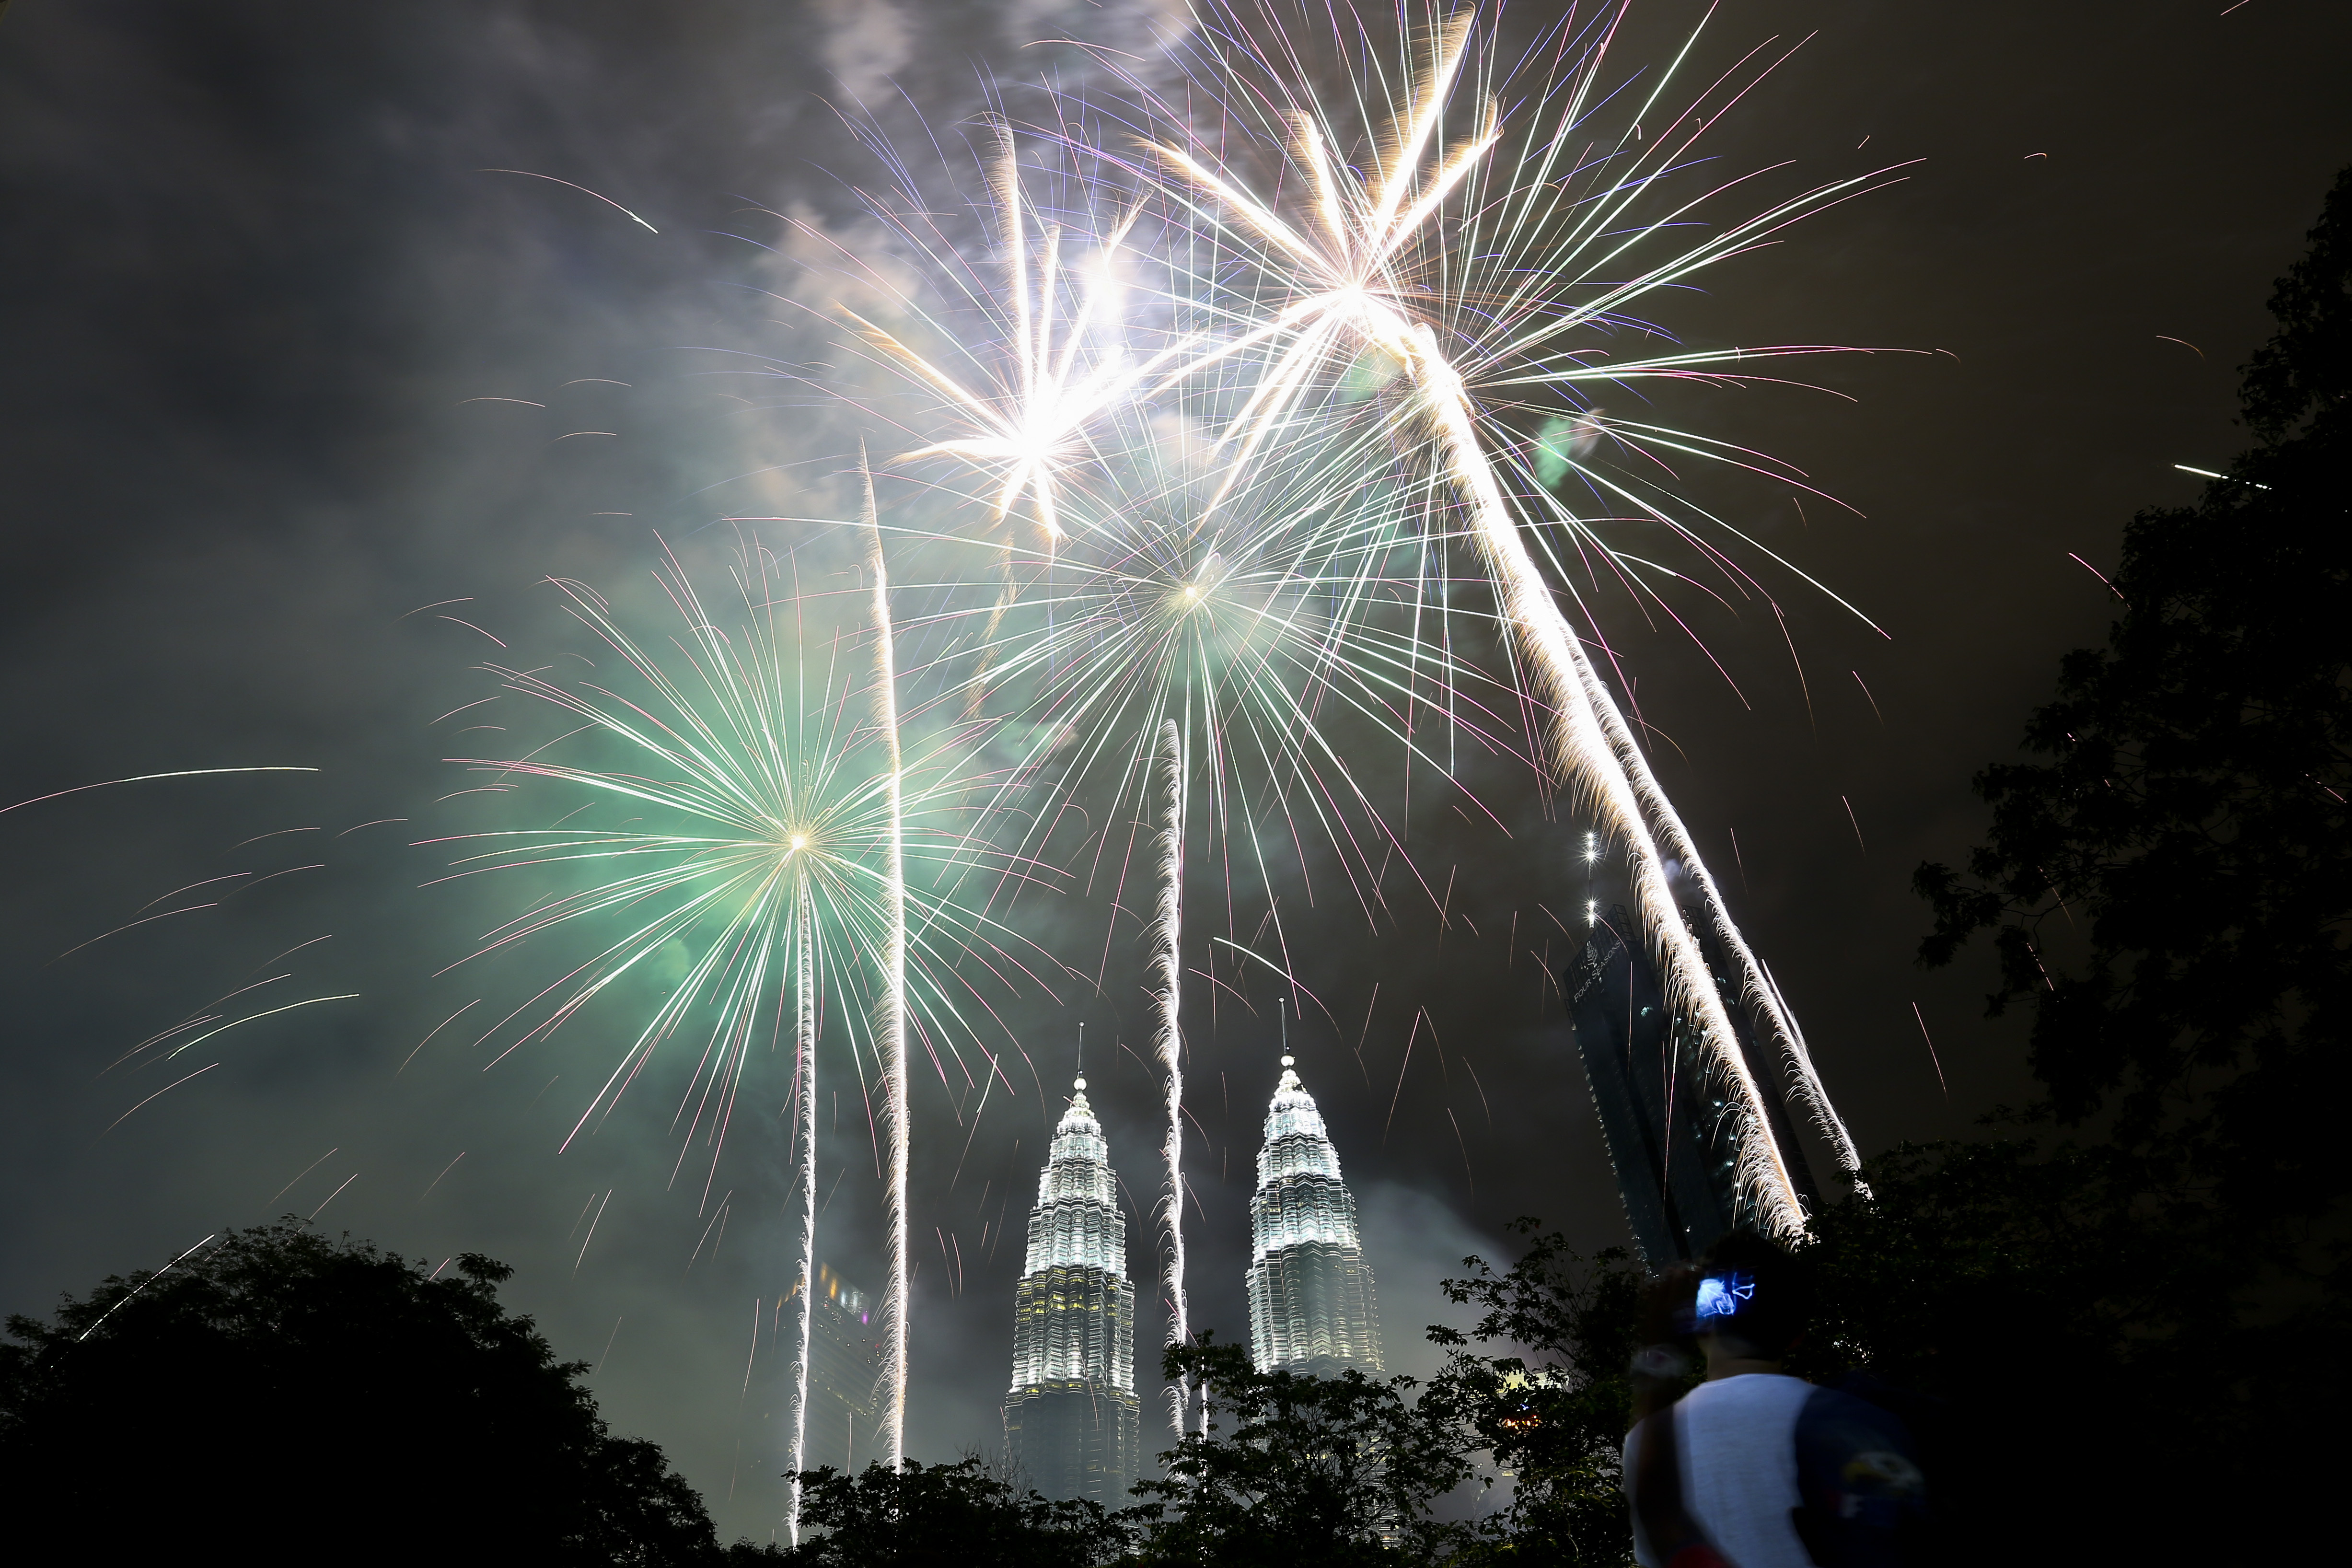 <div class='meta'><div class='origin-logo' data-origin='AP'></div><span class='caption-text' data-credit='AP Photo/Sadiq Asyraf'>Fireworks explode  in front of Malaysia's landmark building, the Petronas Twin Towers, during the New Year's celebration in Kuala Lumpur, Malaysia, Monday, Jan. 1, 2018.</span></div>